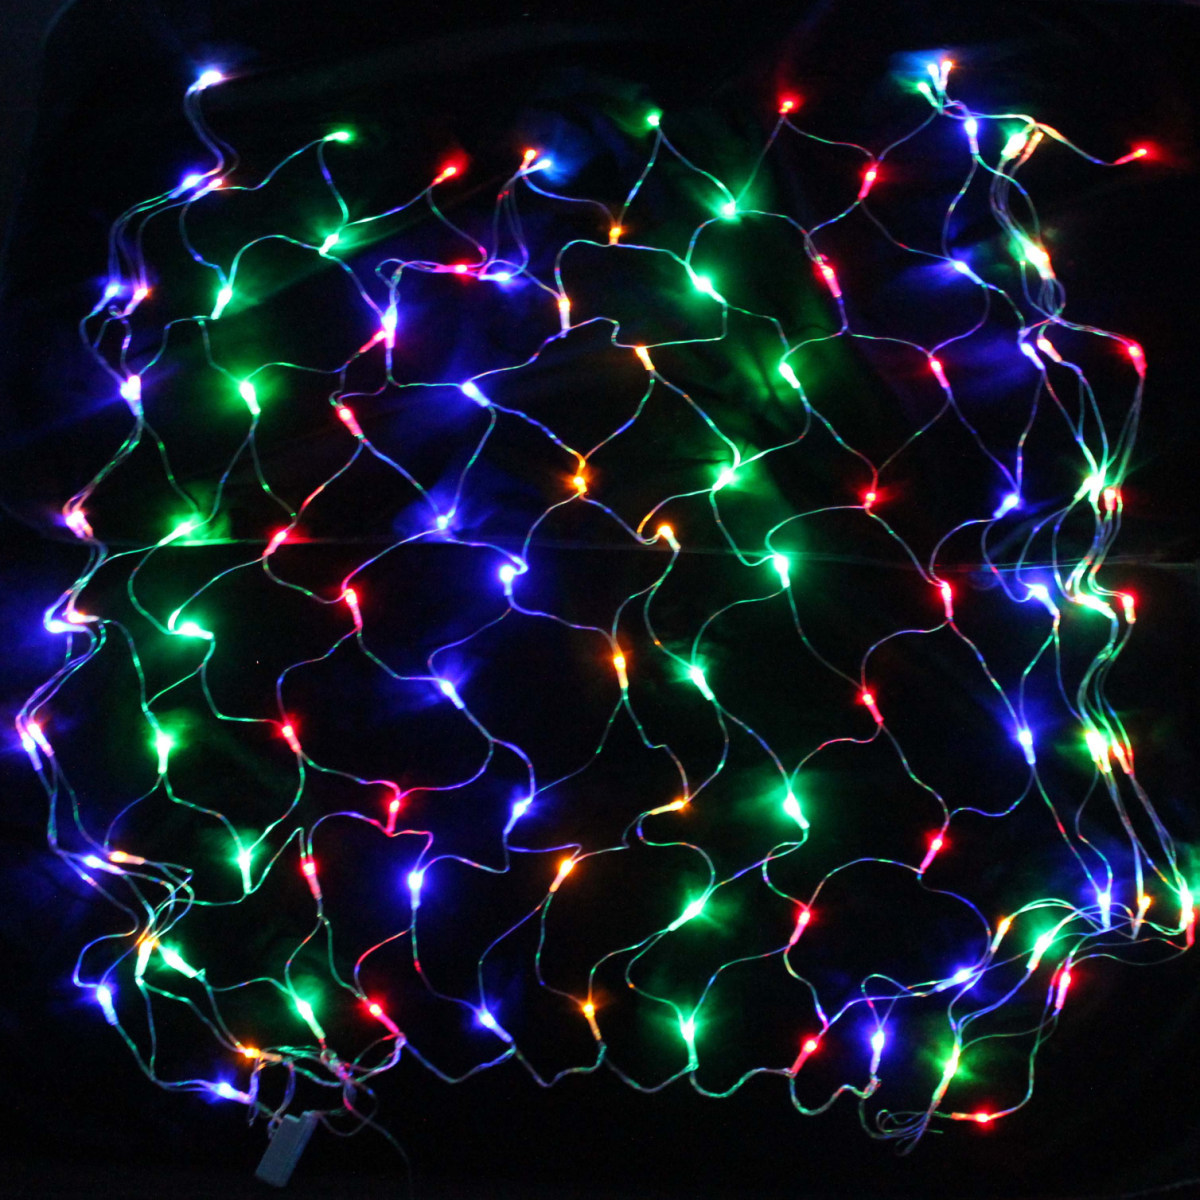 3h1 christmas decoration 120 led net lights decoration lamp curtain lights lantern string light 190g party costume union in led string from lights - Decoration Lights